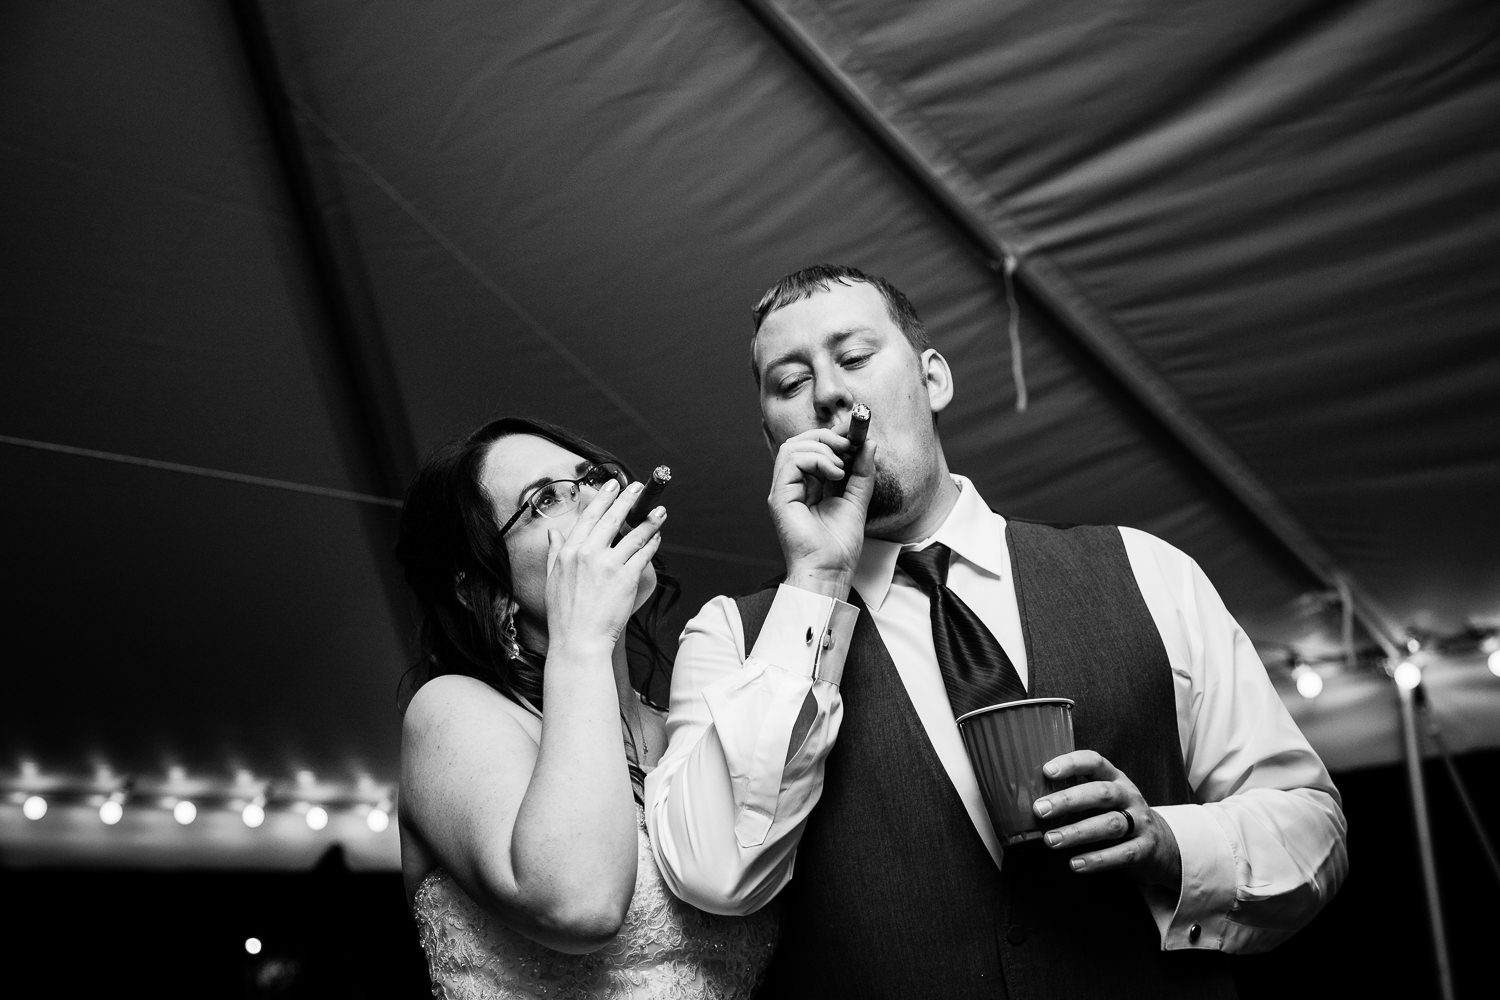 heritage-hall-missoula-montana-bride-groom-puff-cigars.jpg